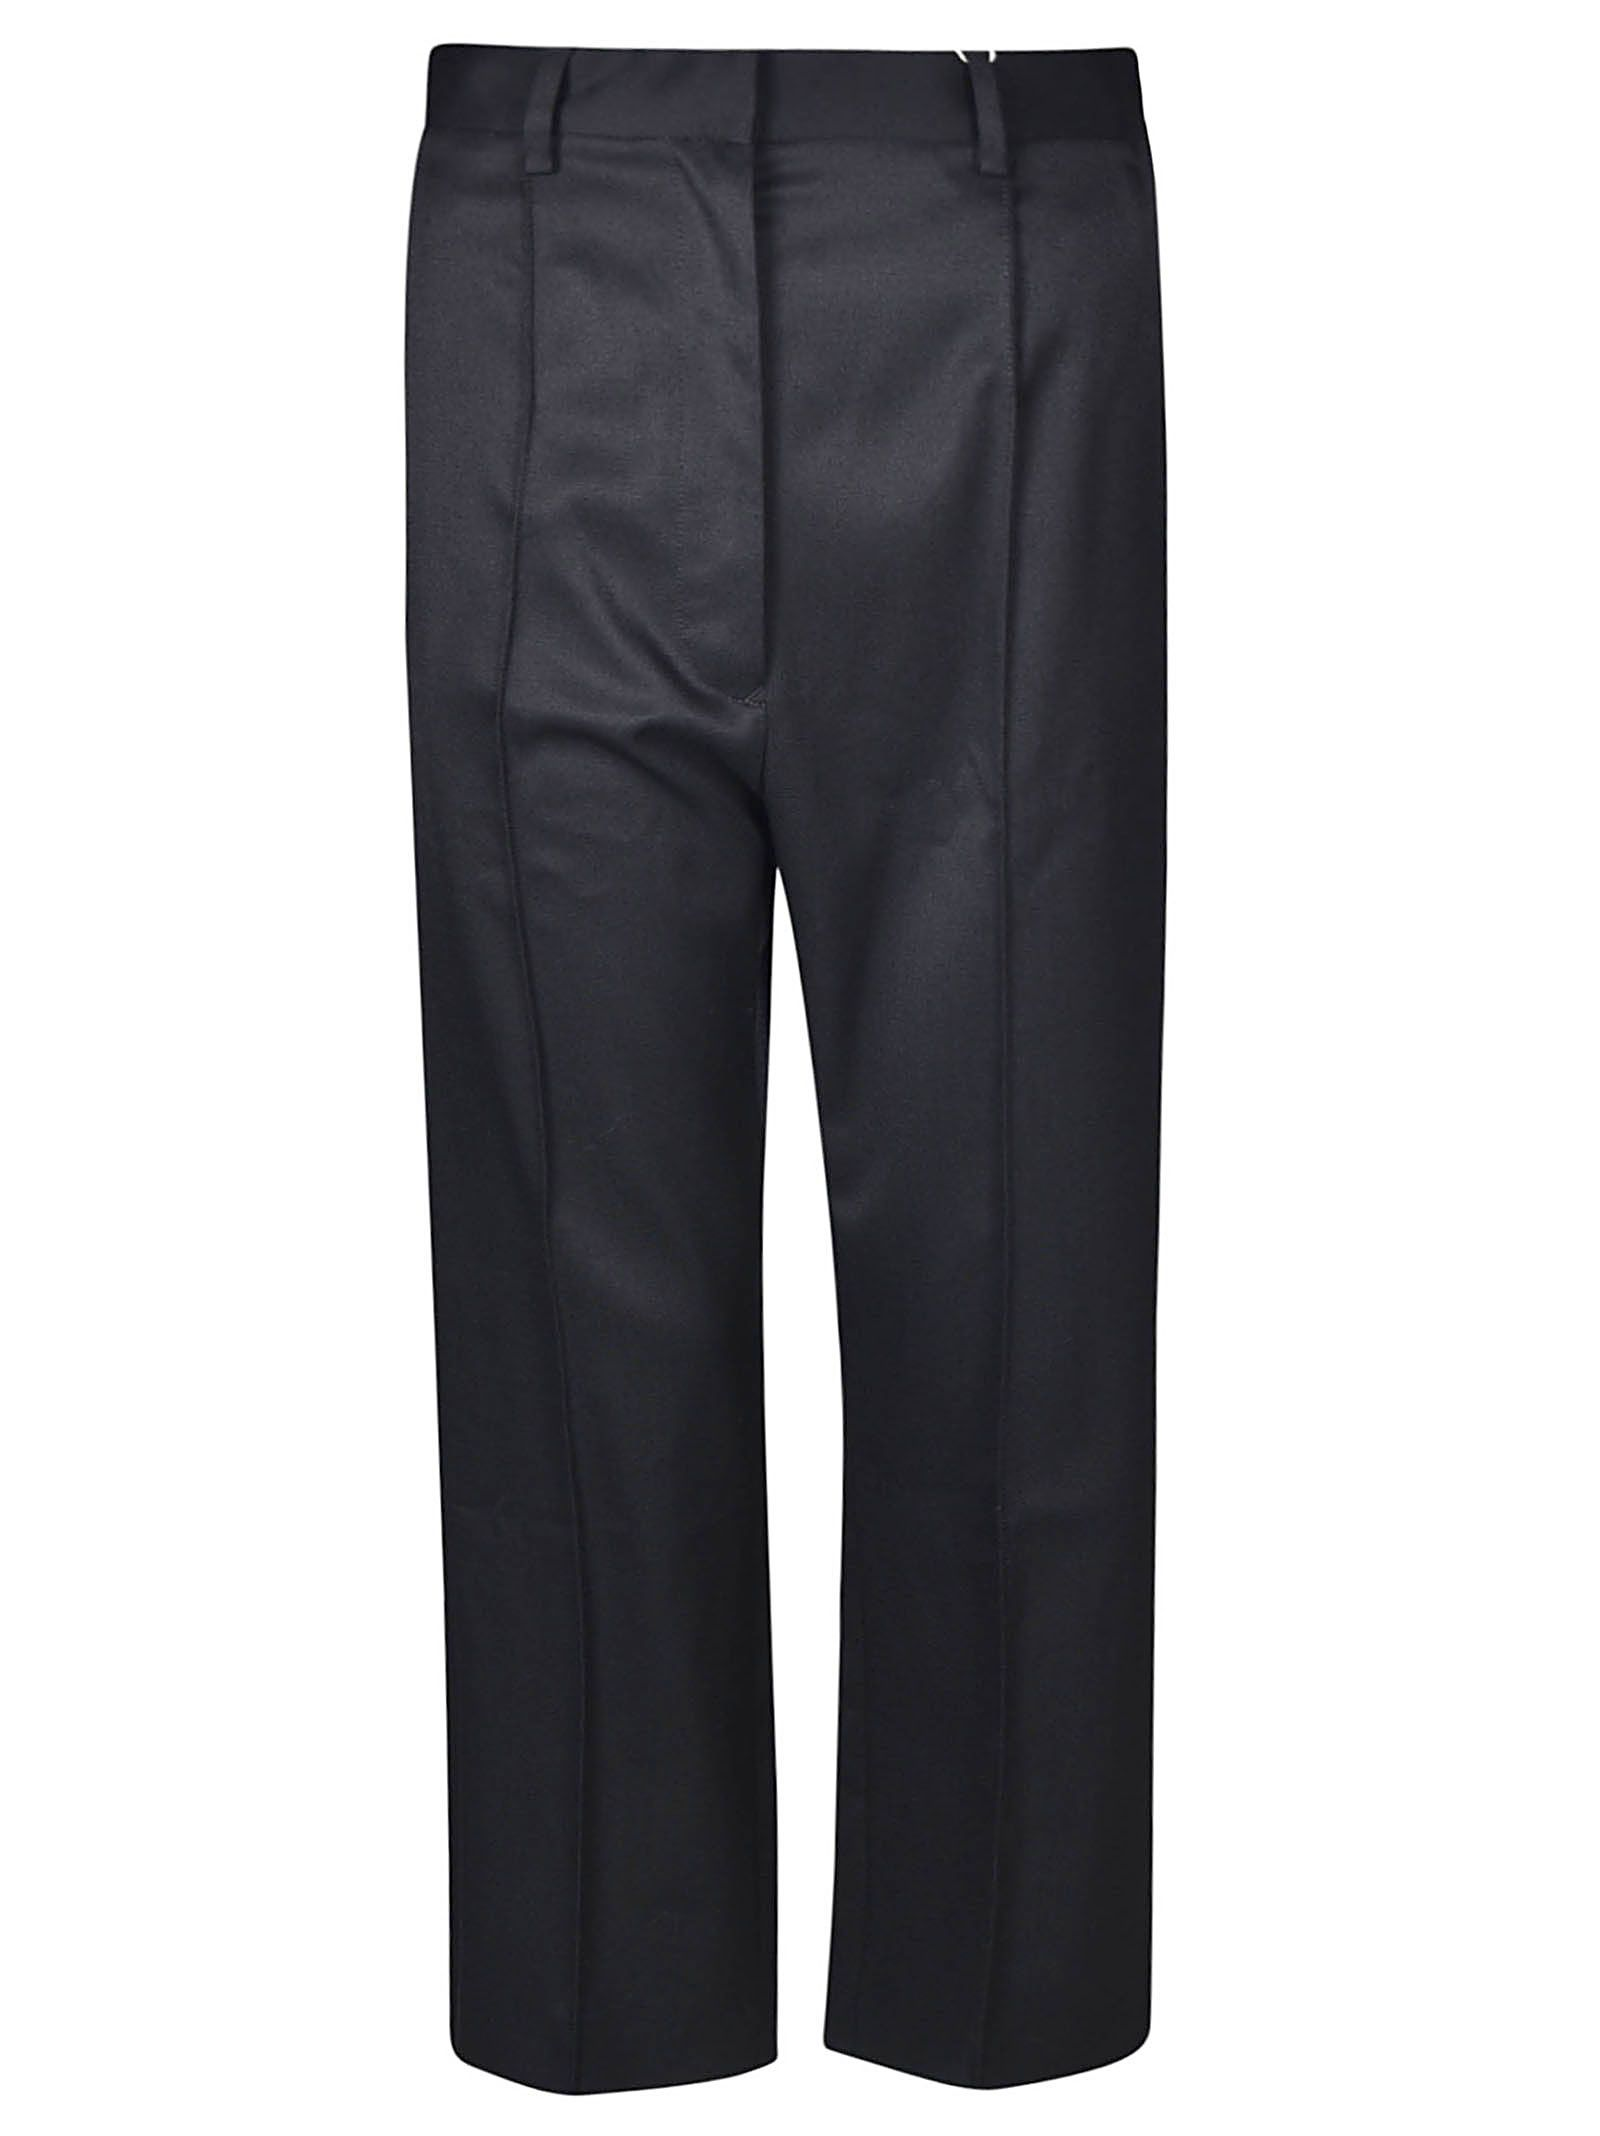 Mm6 Maison Margiela Straight Cropped Crepe Trousers